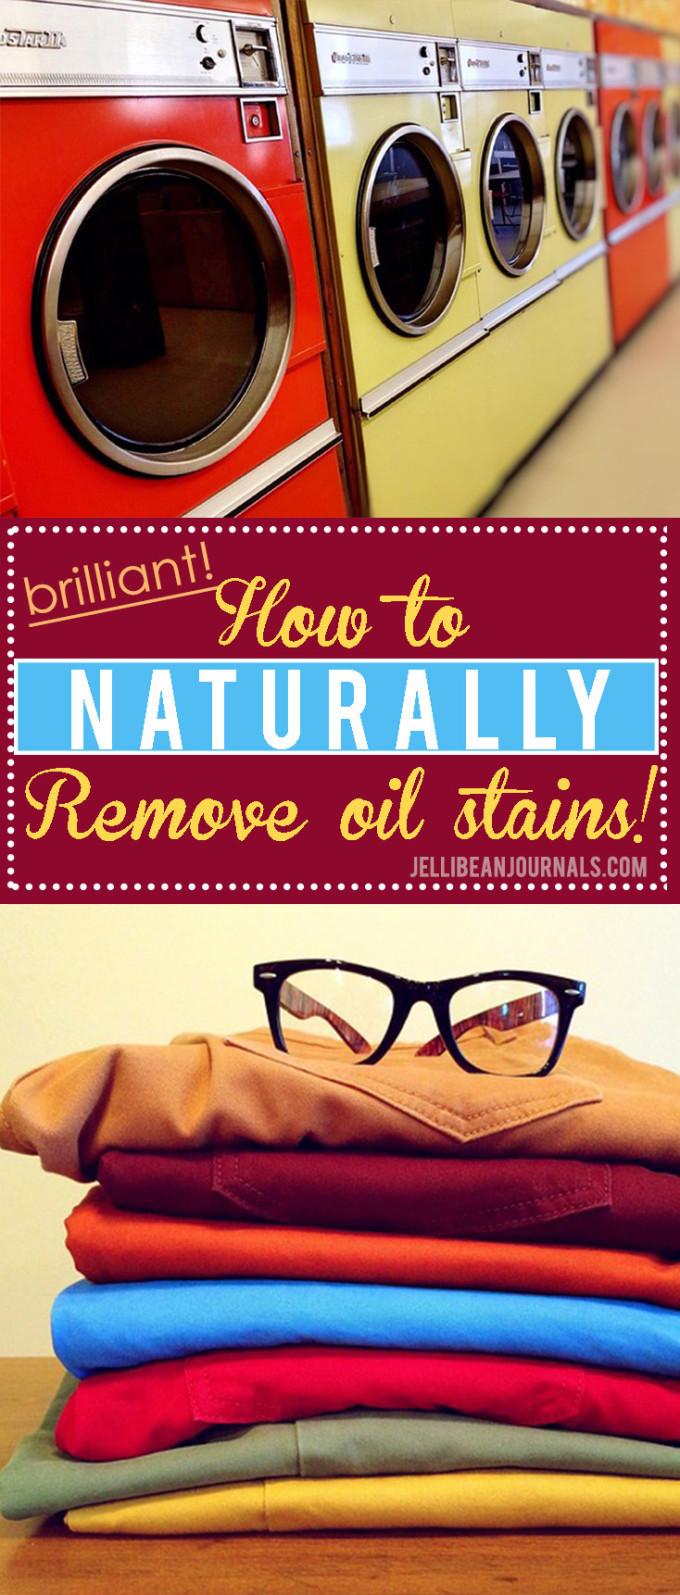 Simple 1-ingredient natural solution to remove pesky oil stains from clothes. Gotta try this!! at jellibeanjournals.com